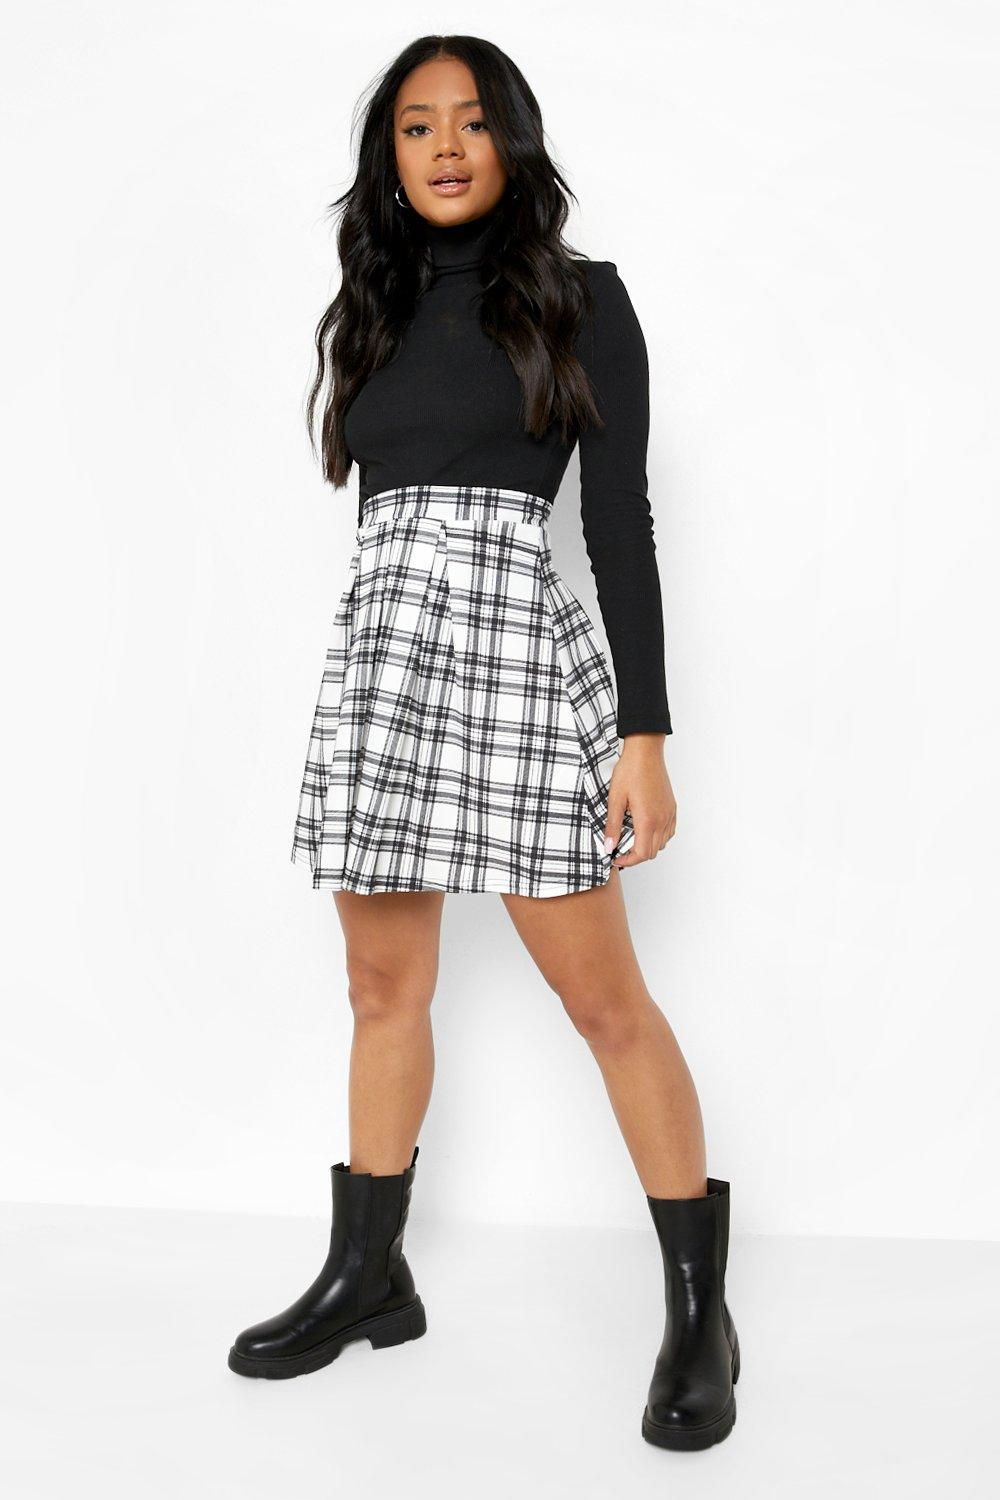 90s Clothing Outfits You Can Buy Now Womens Flannel Print Pleated Tennis Mini Skirt - White - 12 $9.60 AT vintagedancer.com